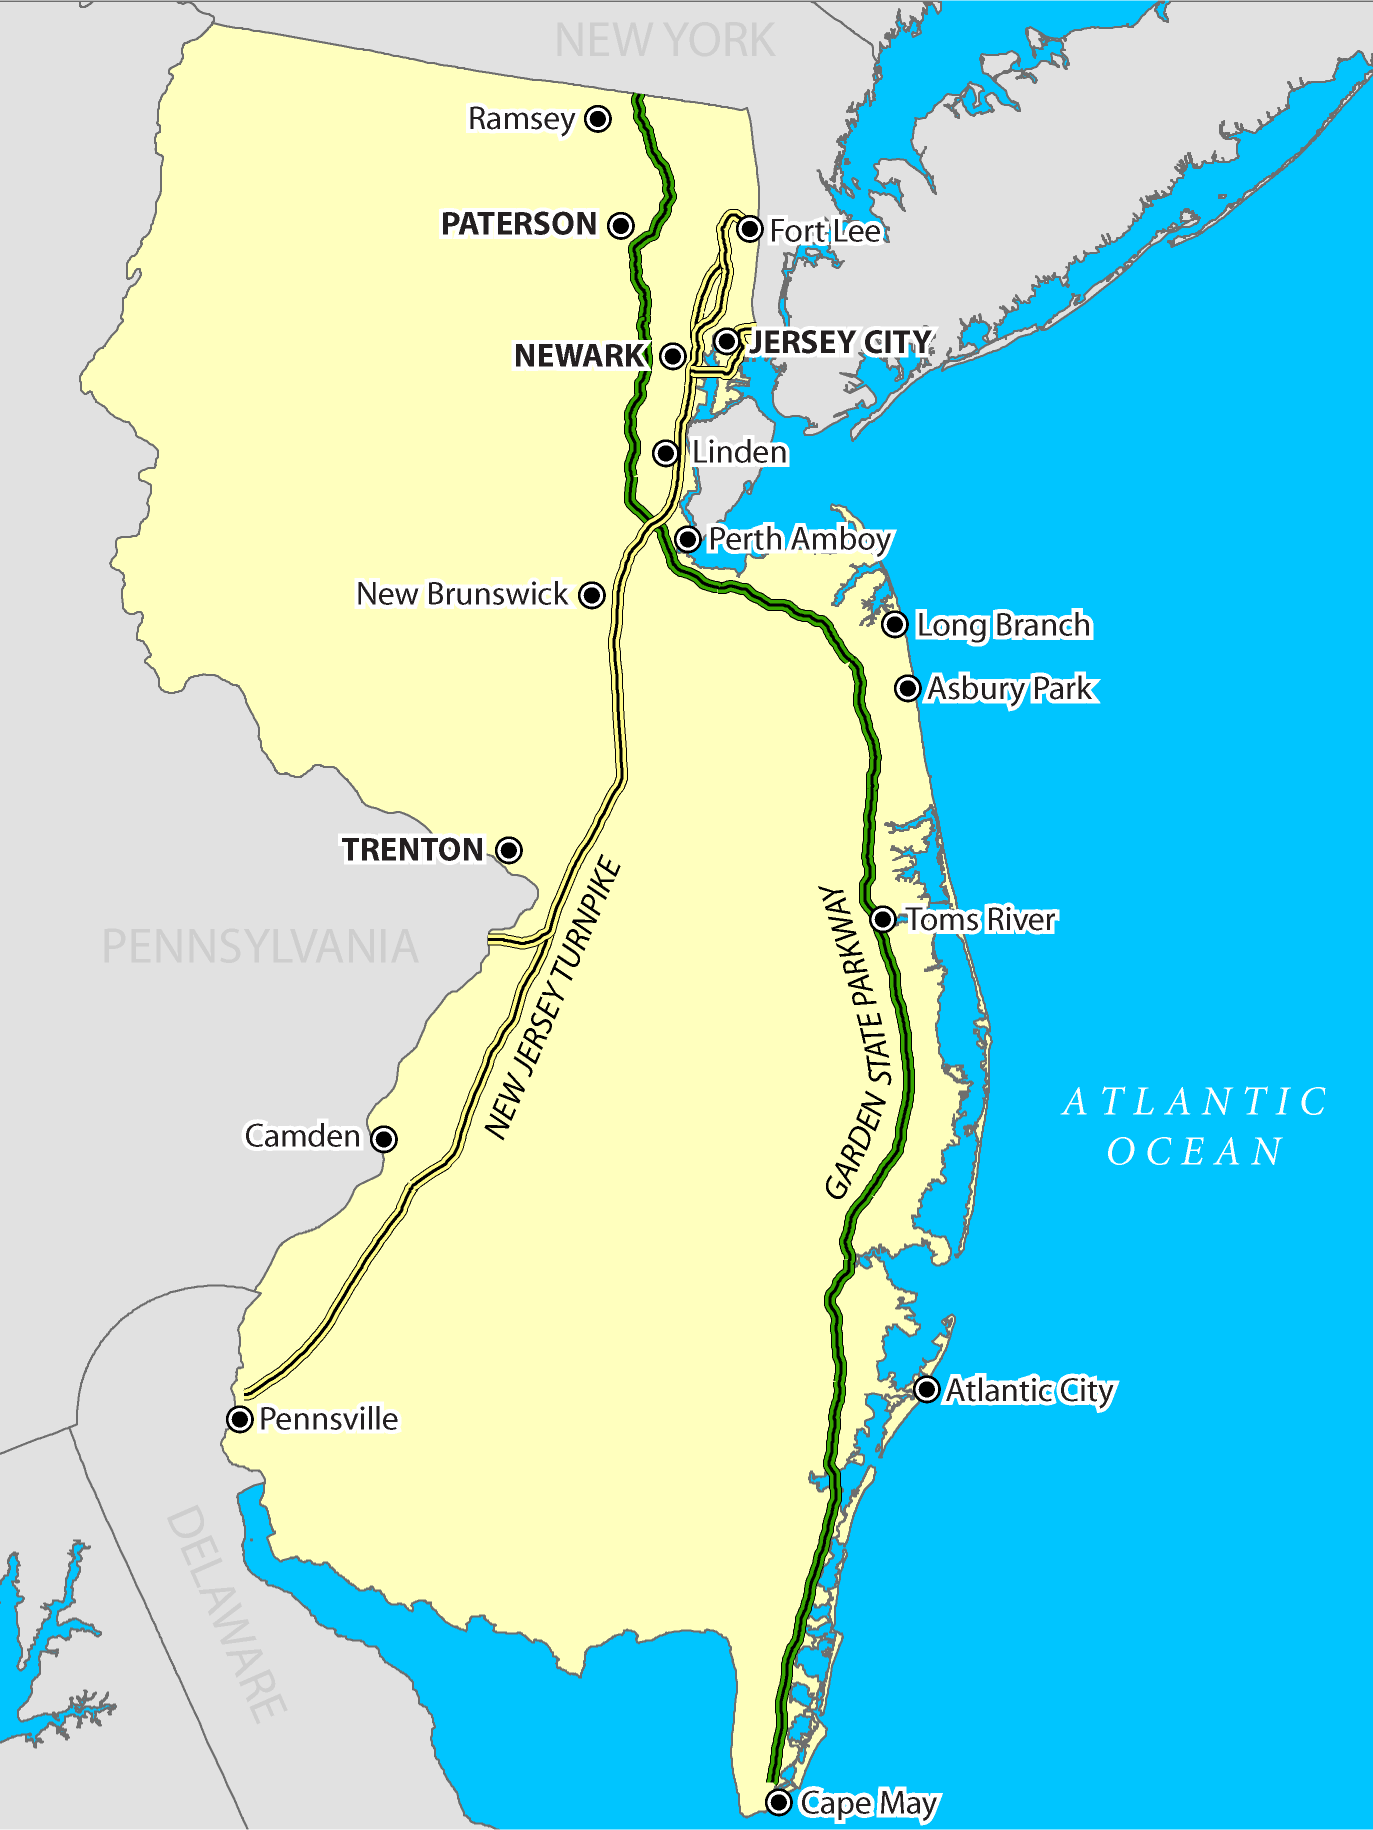 FileNJ GSPTPpng Wikimedia Commons - Map of the state of new jersey